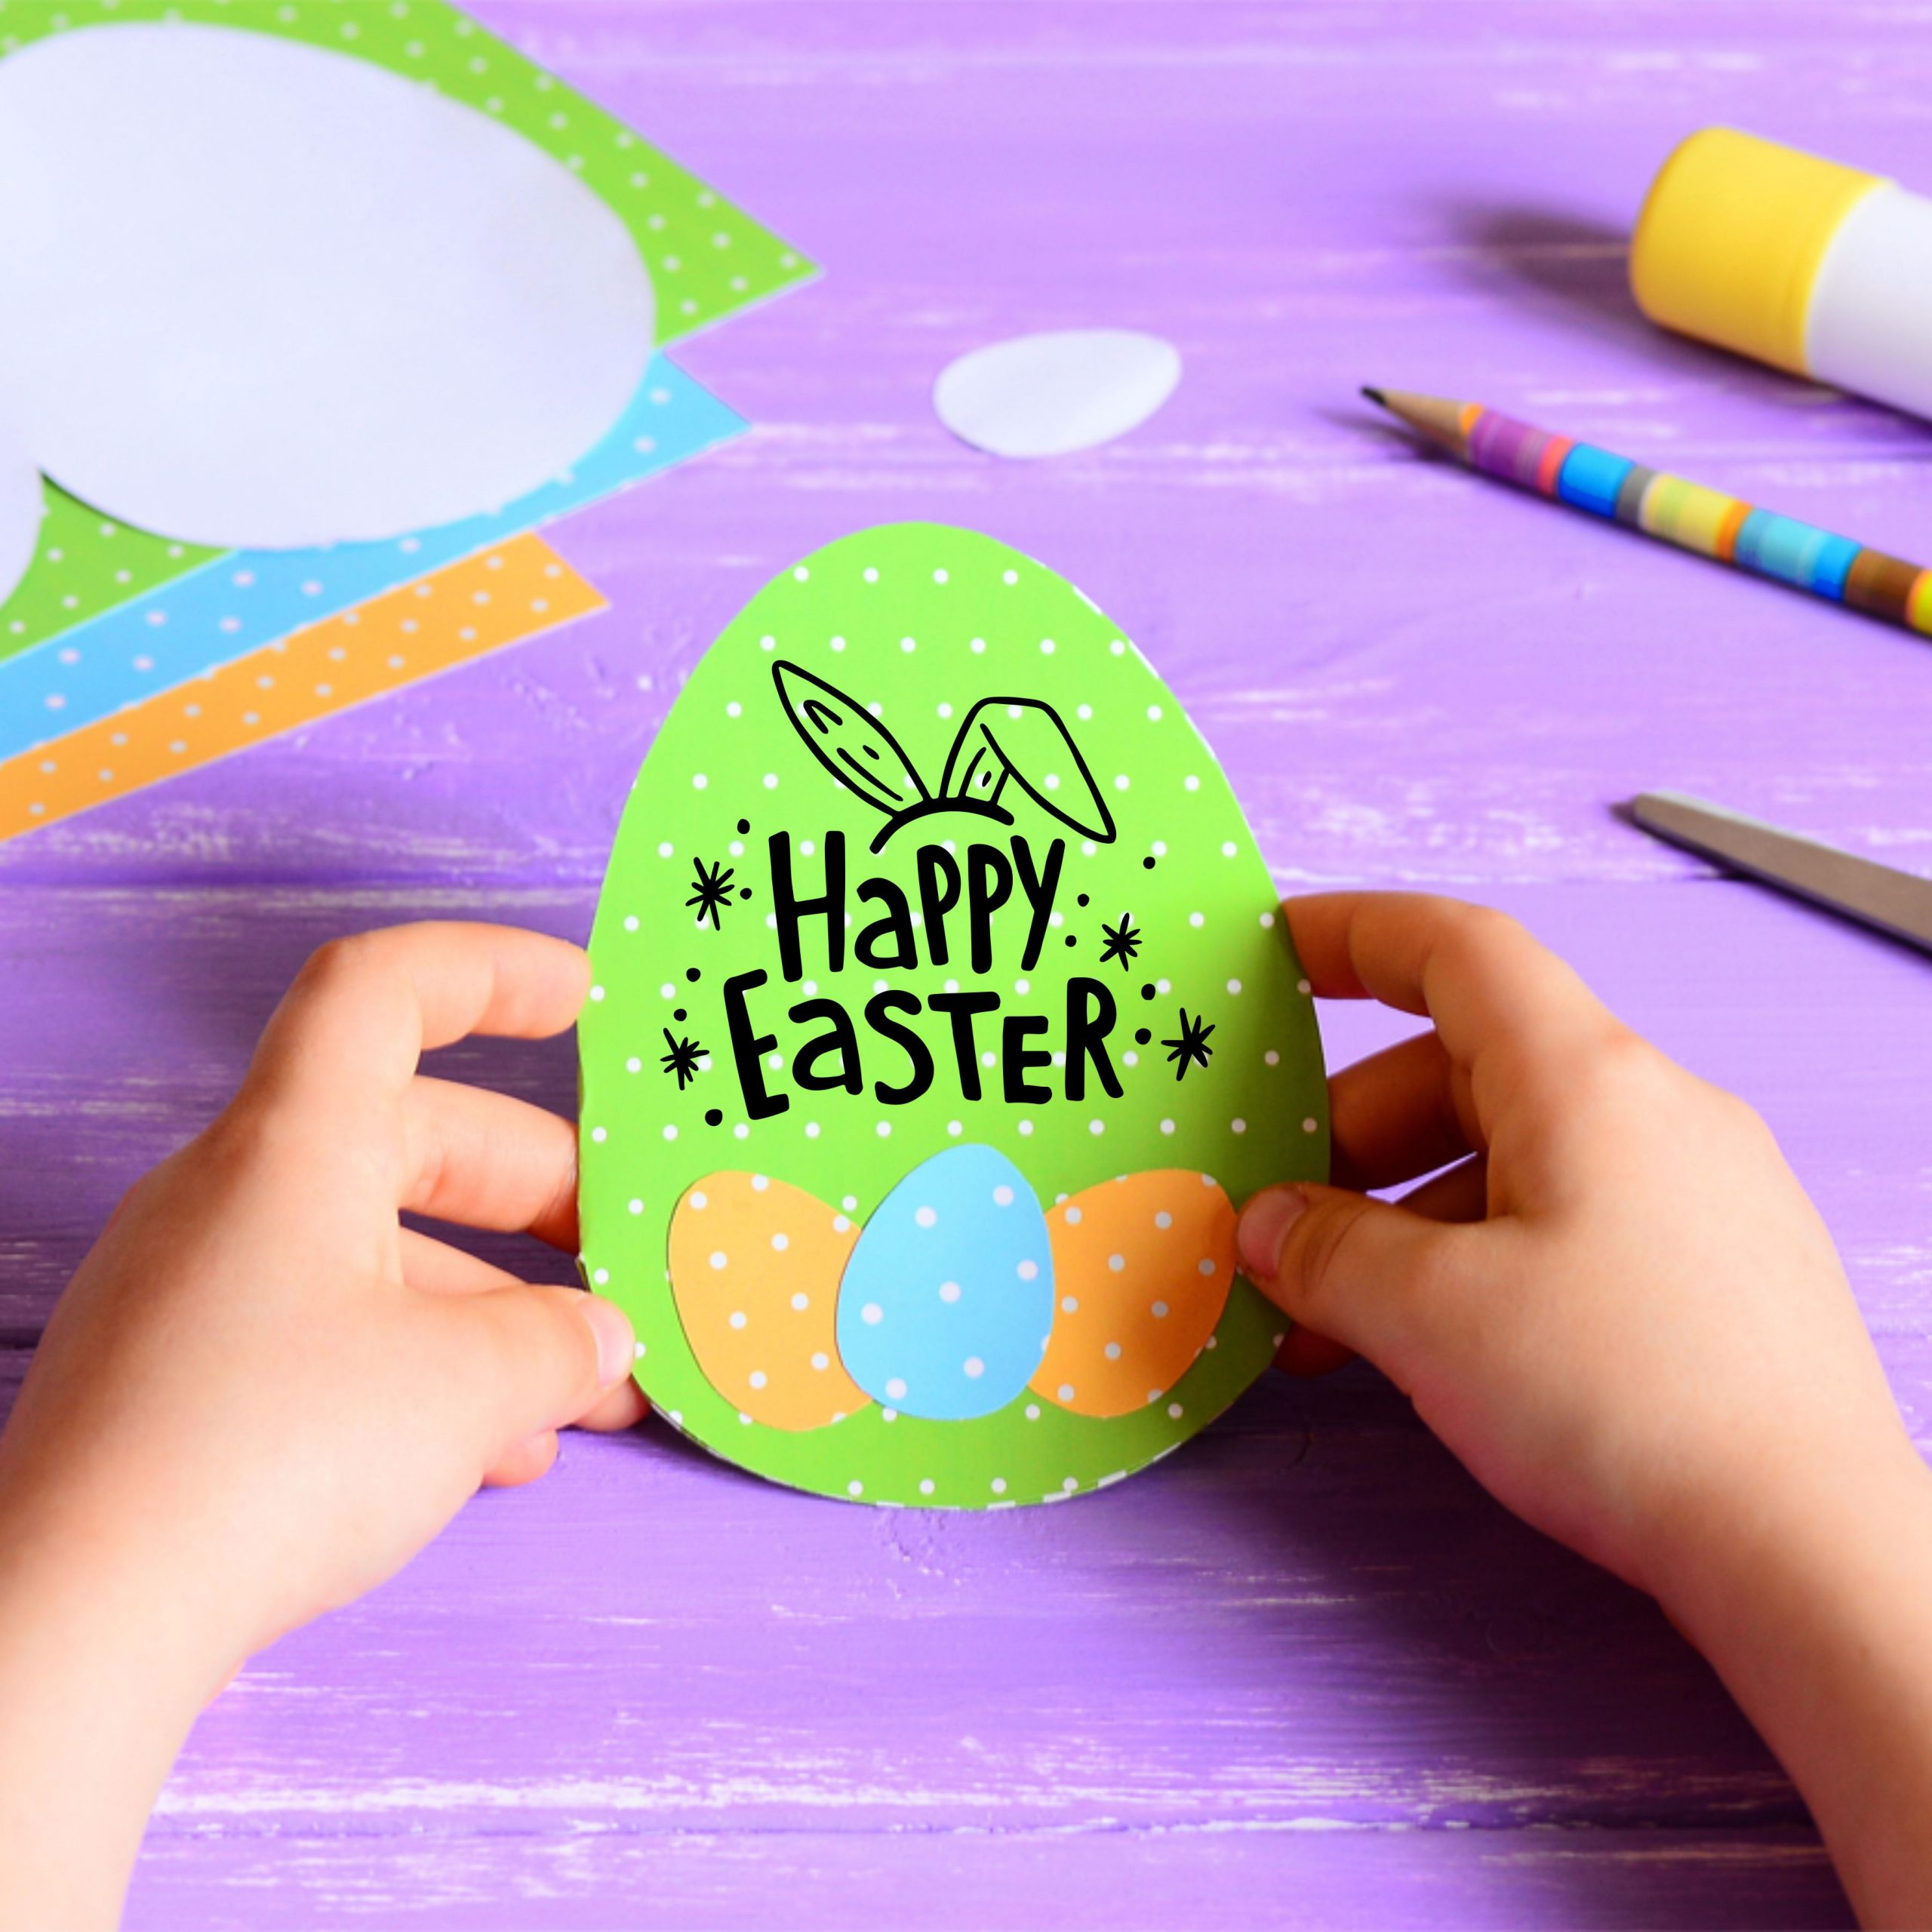 Printable Easter Egg Card for young children to make.